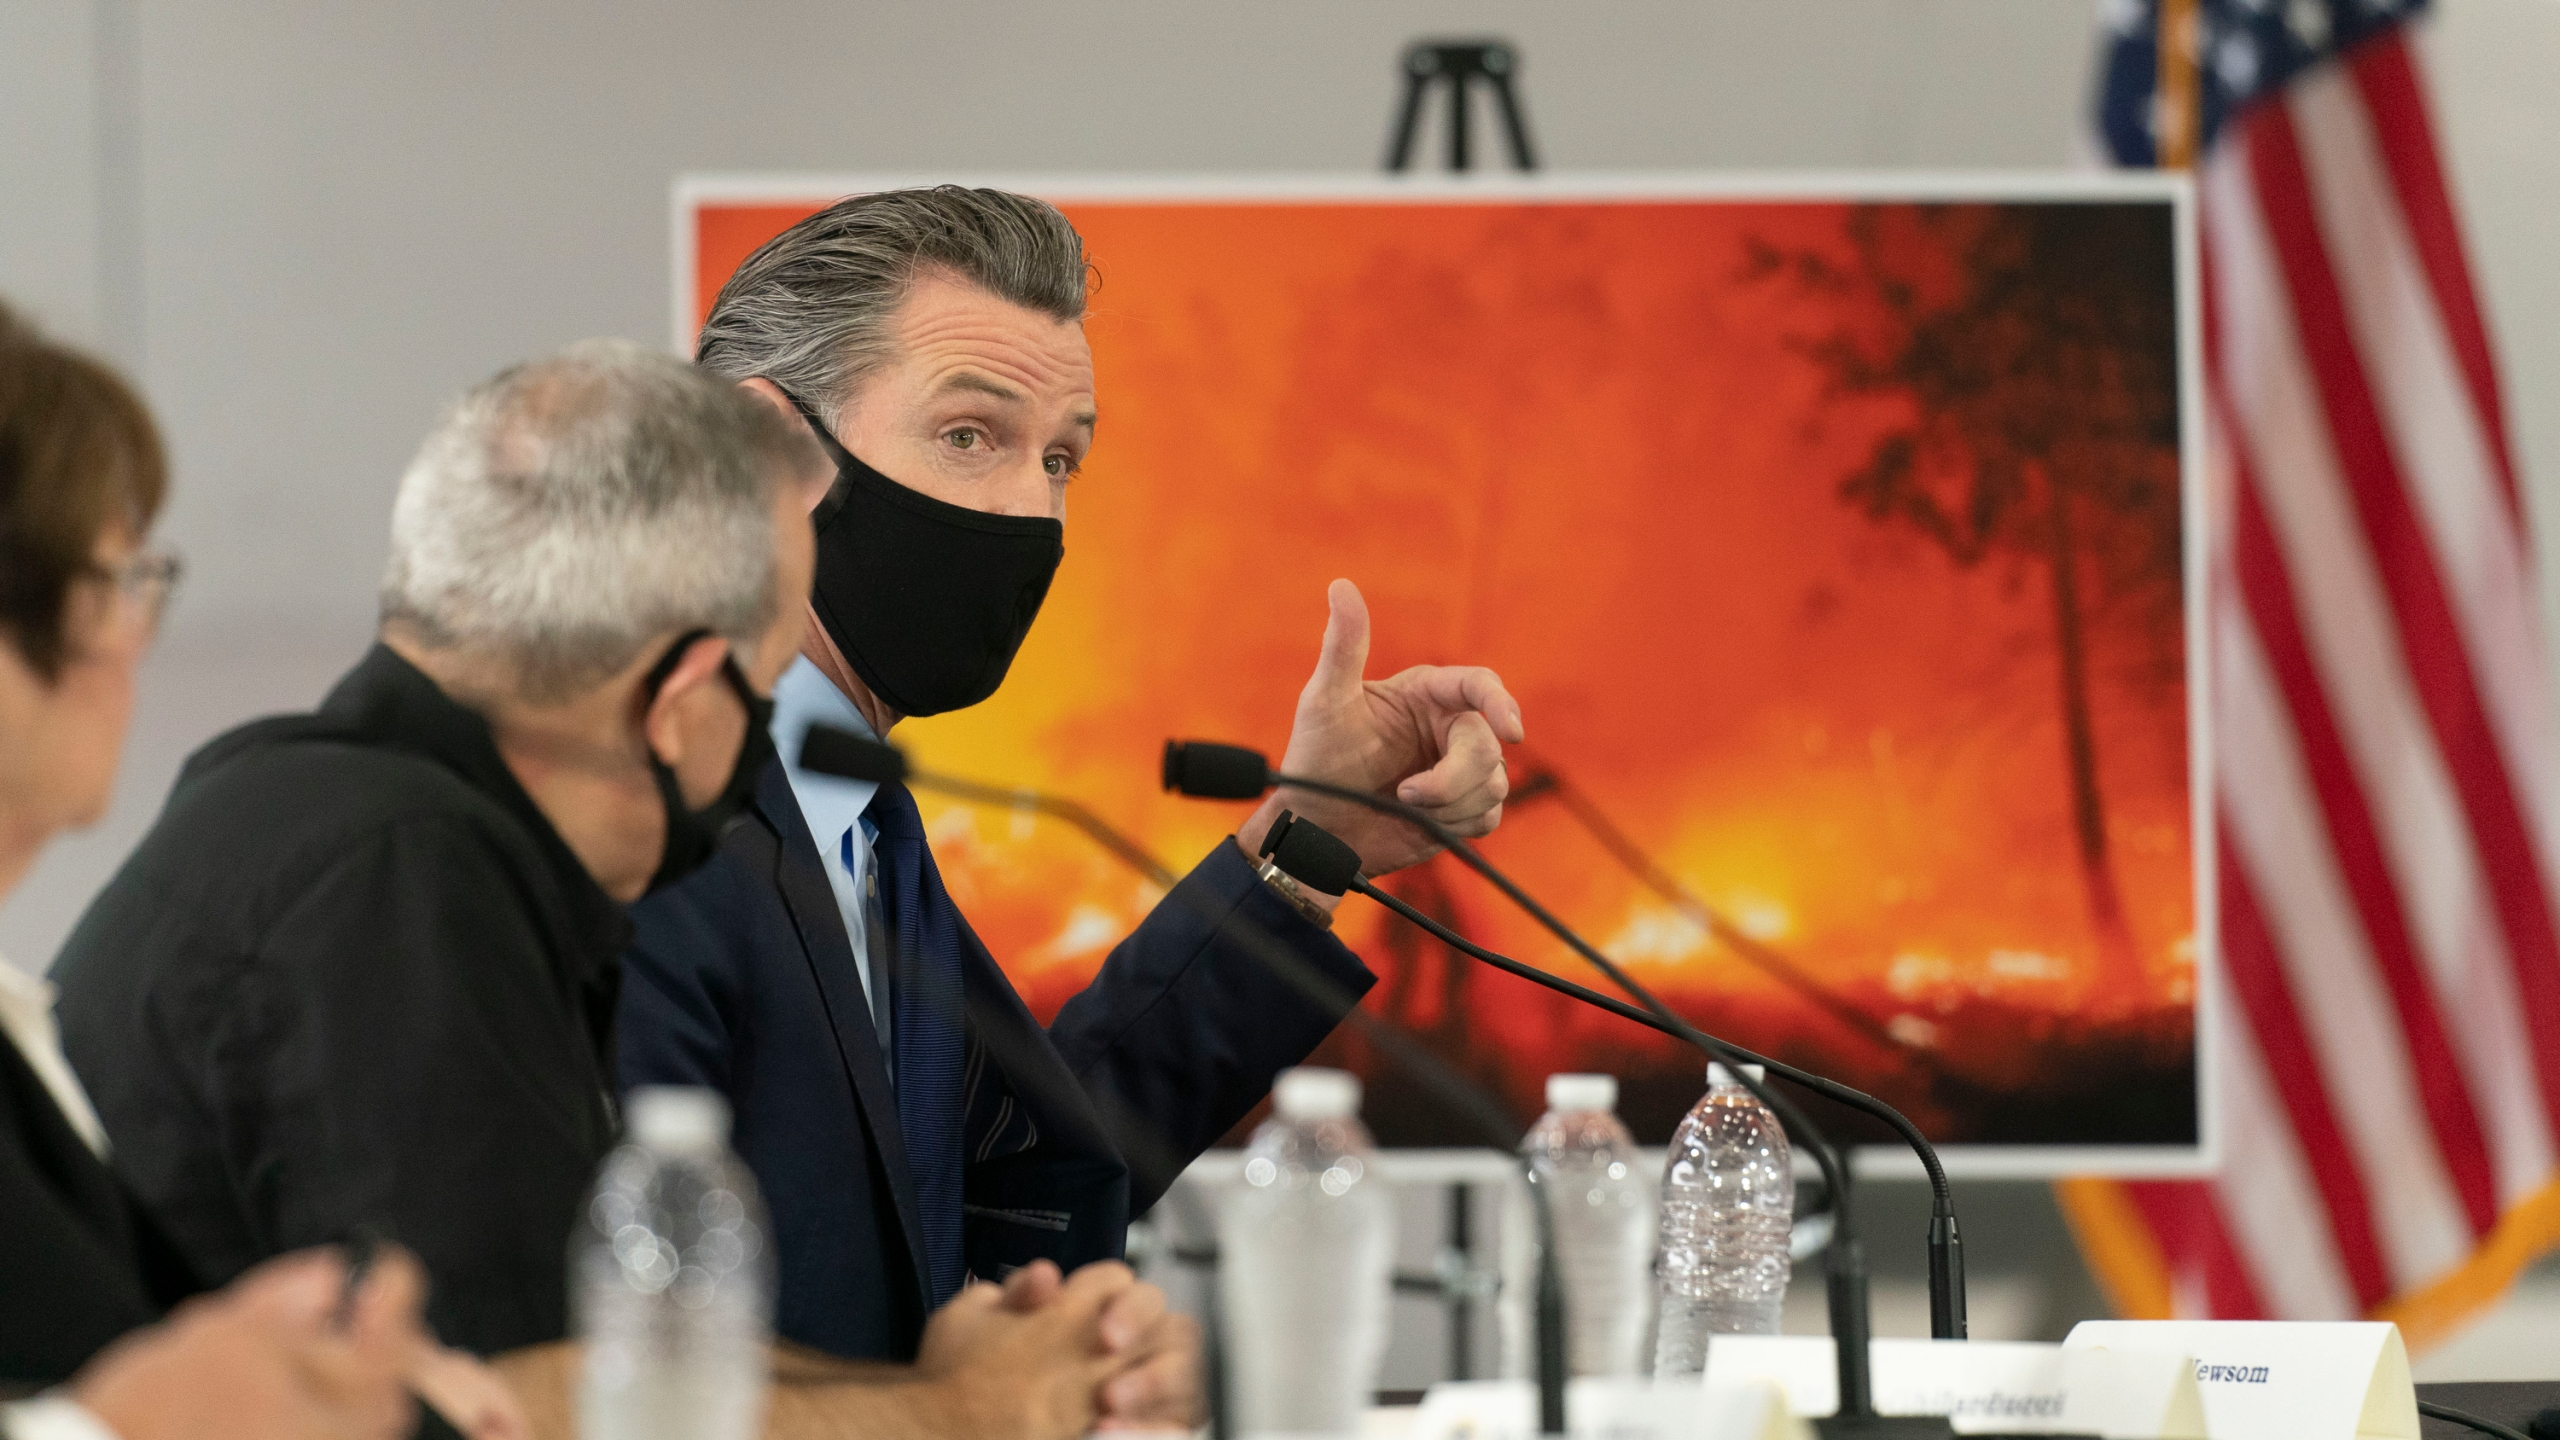 California Gov. Gavin Newsom speaks about wildfires during a briefing with then President Donald Trump at Sacramento McClellan Airport in McClellan Park, Calif., on Sept. 14, 2020. (Andrew Harnik / Associated Press)